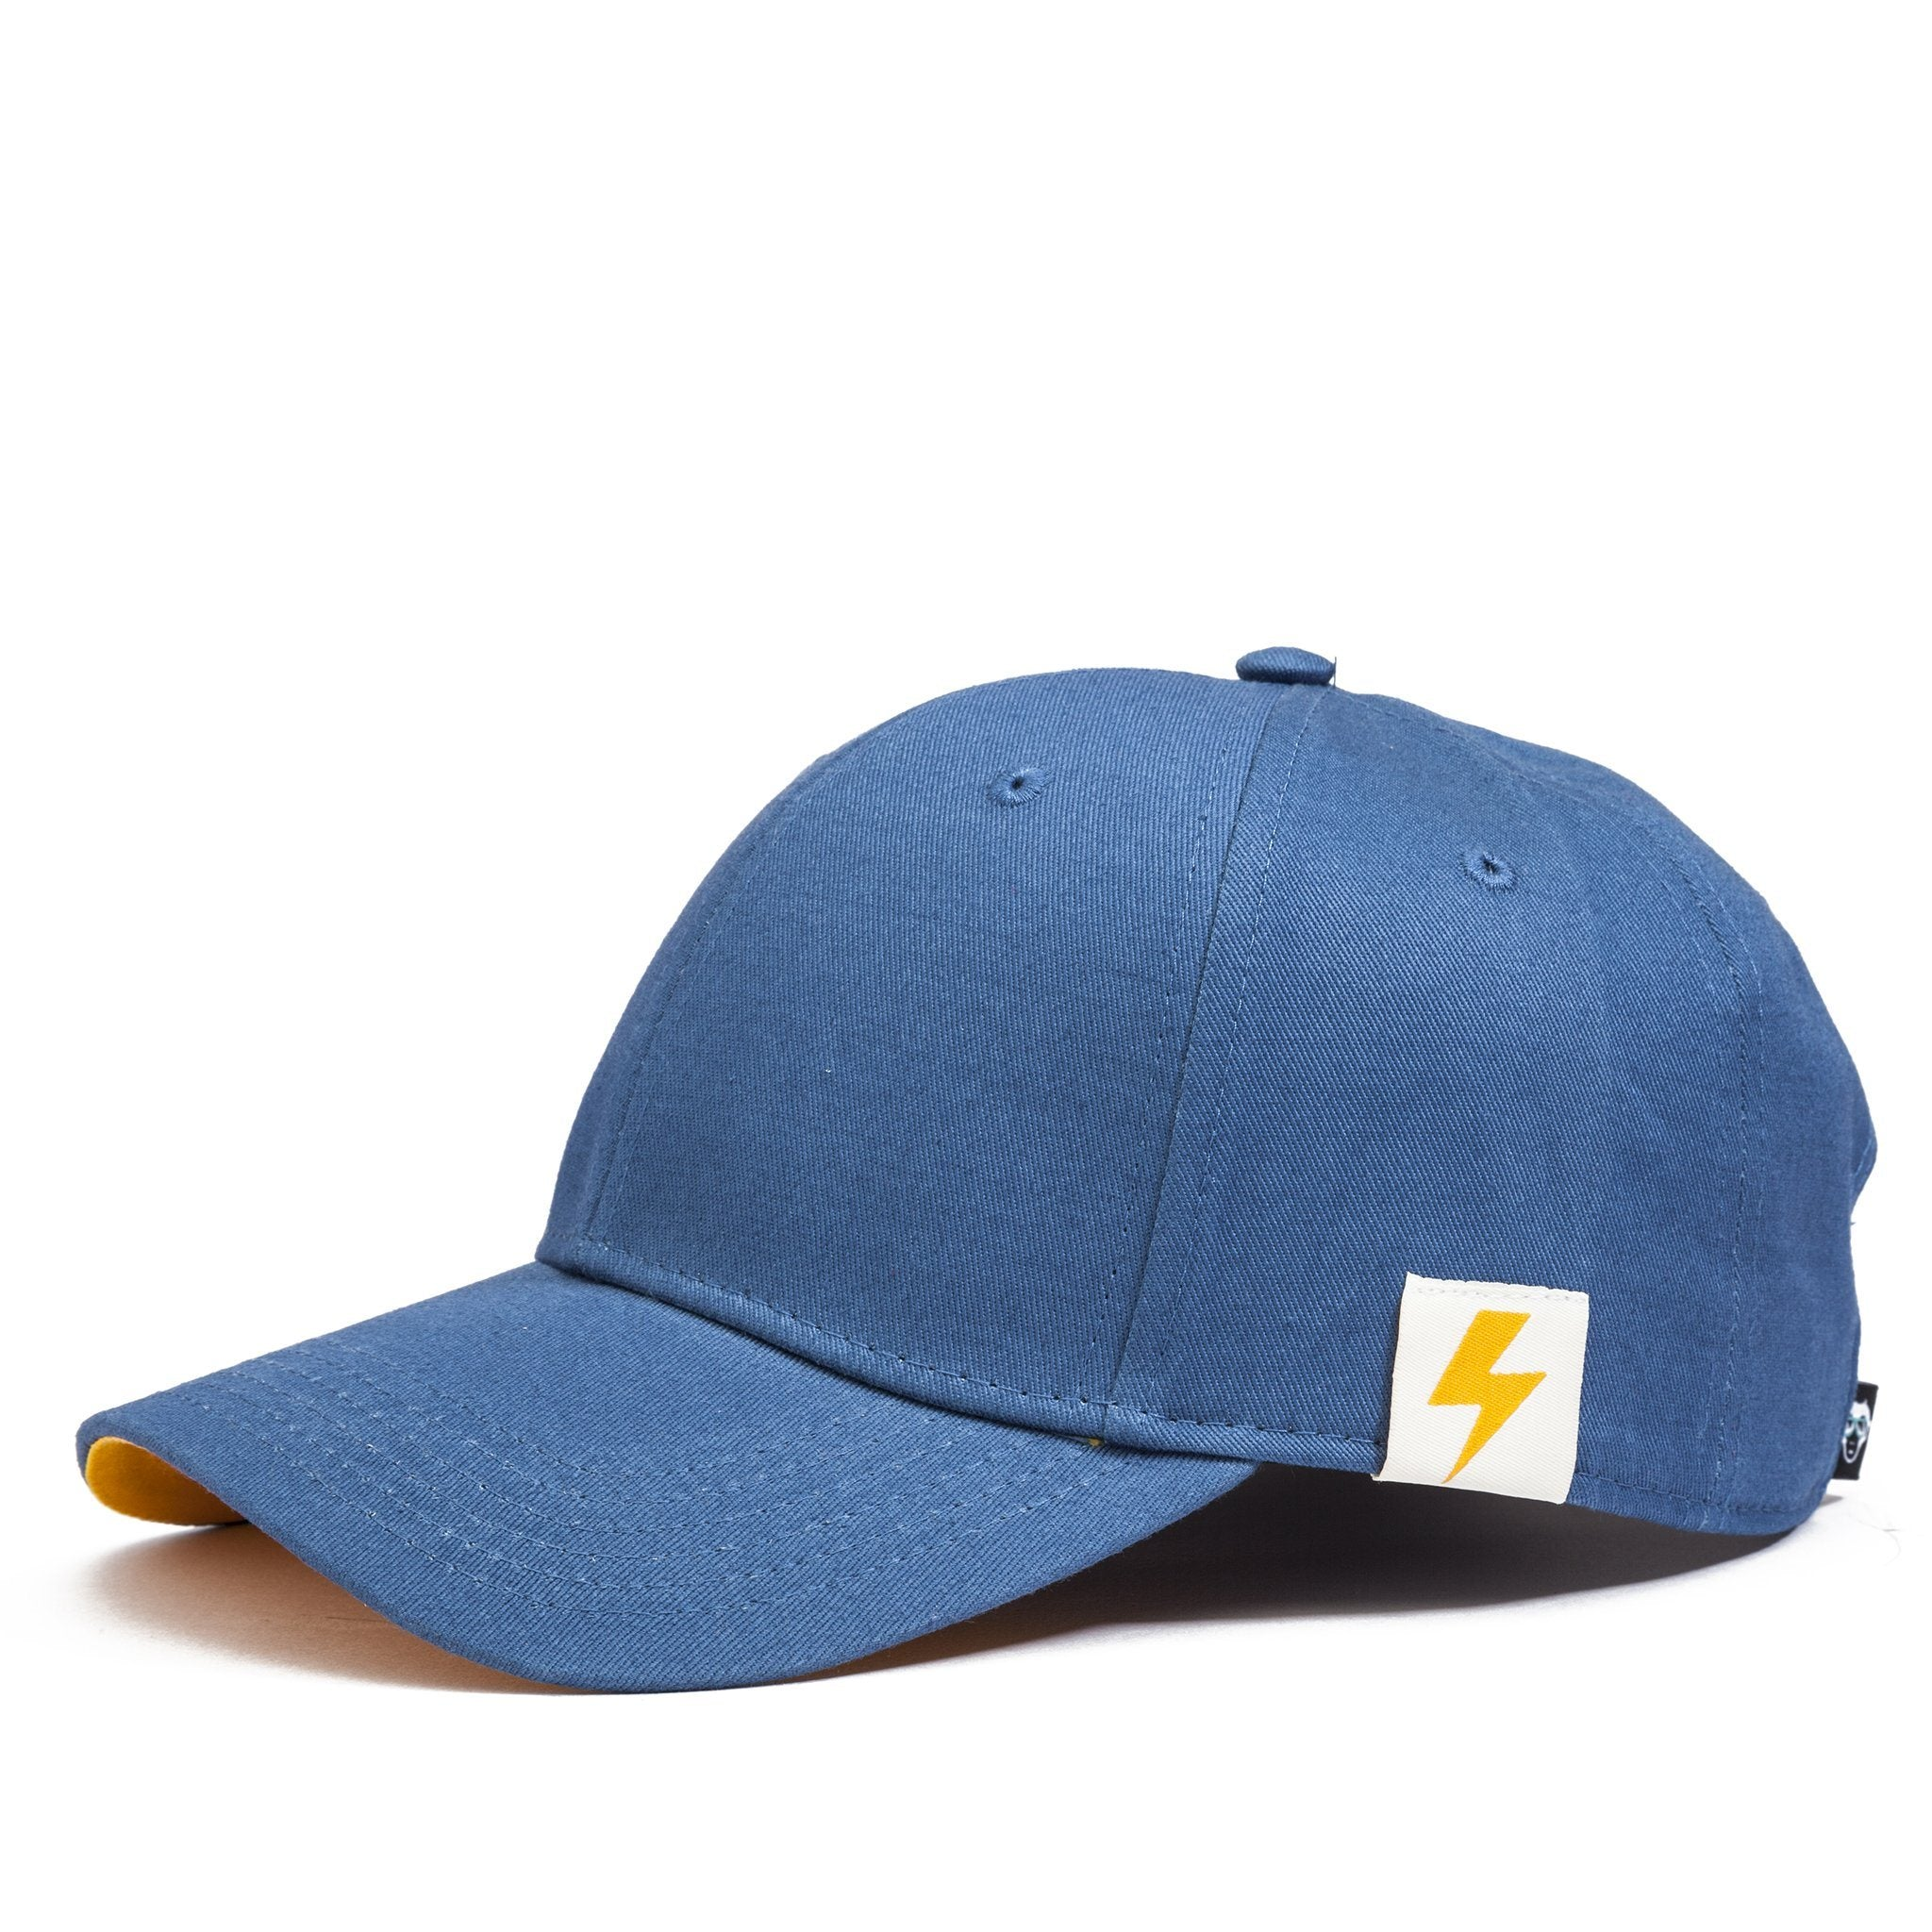 Sea Blue Baseball Cap